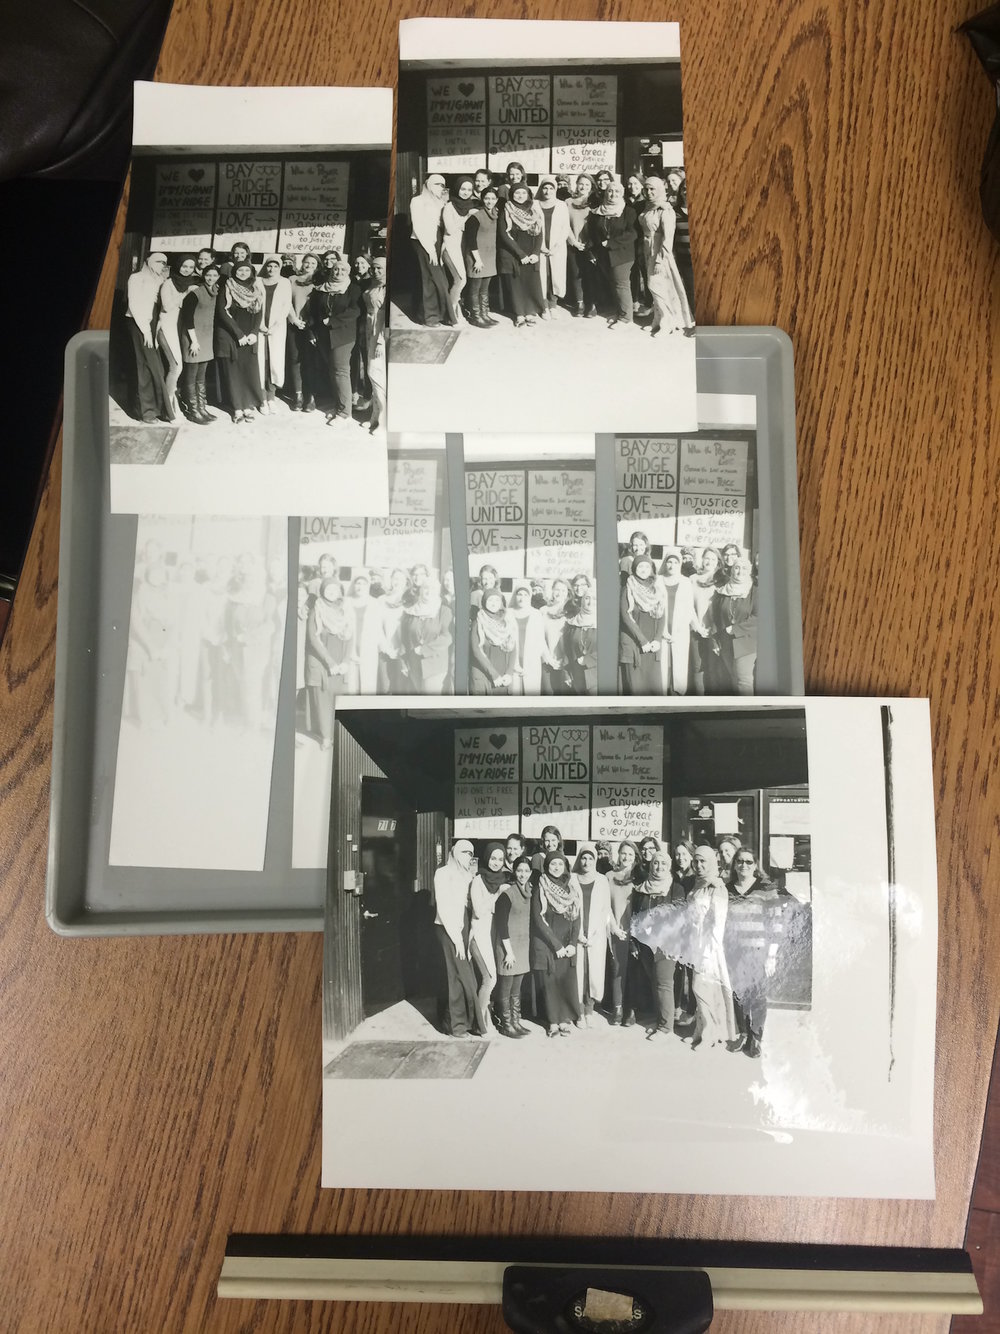 Darkroom: More test prints and strips